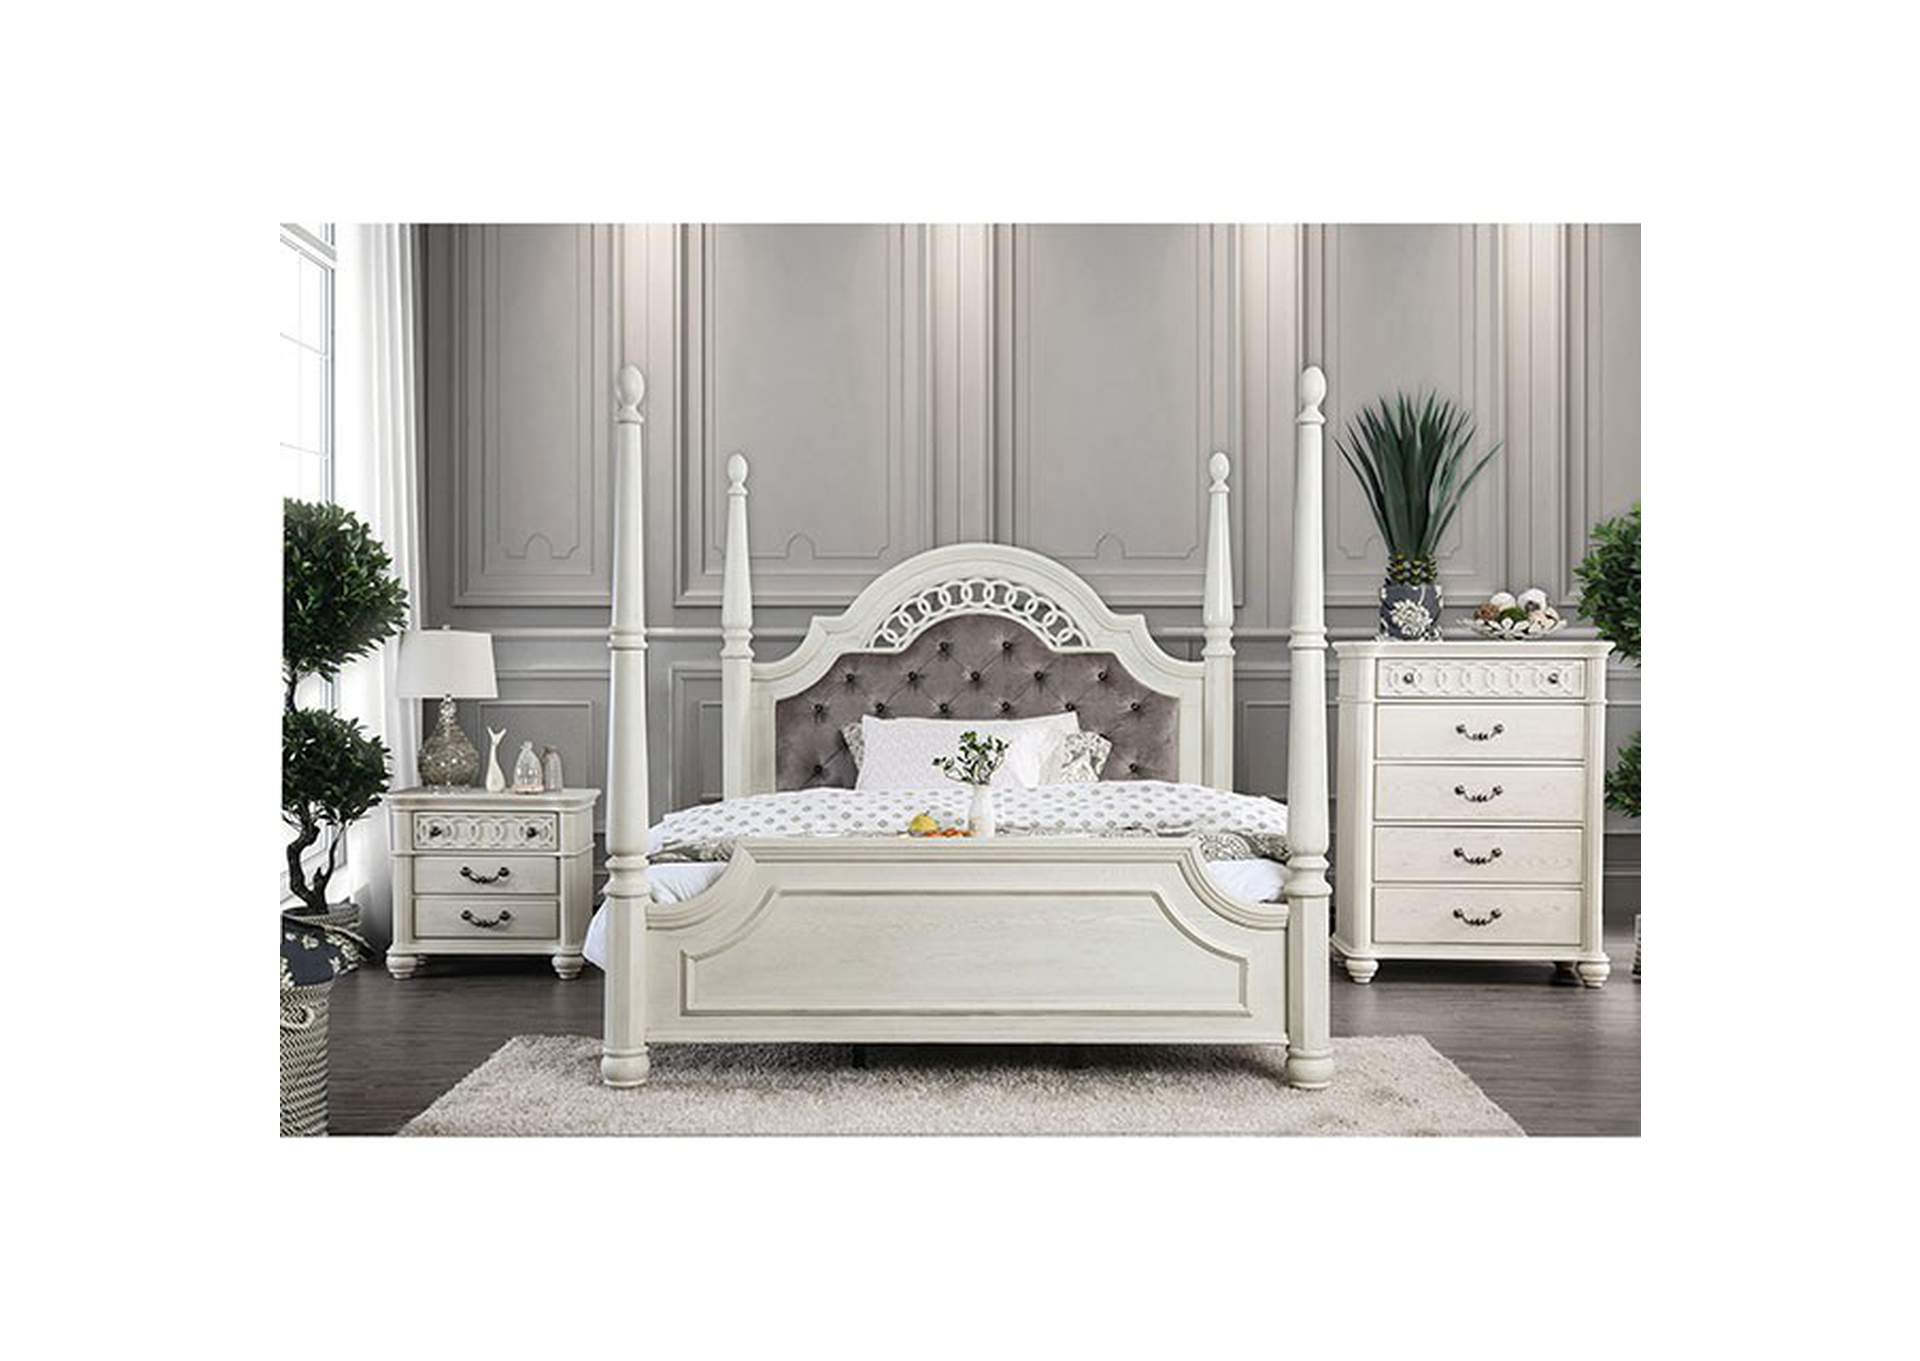 Fantasia White Upholstered Queen Poster Panel Bed,Furniture of America